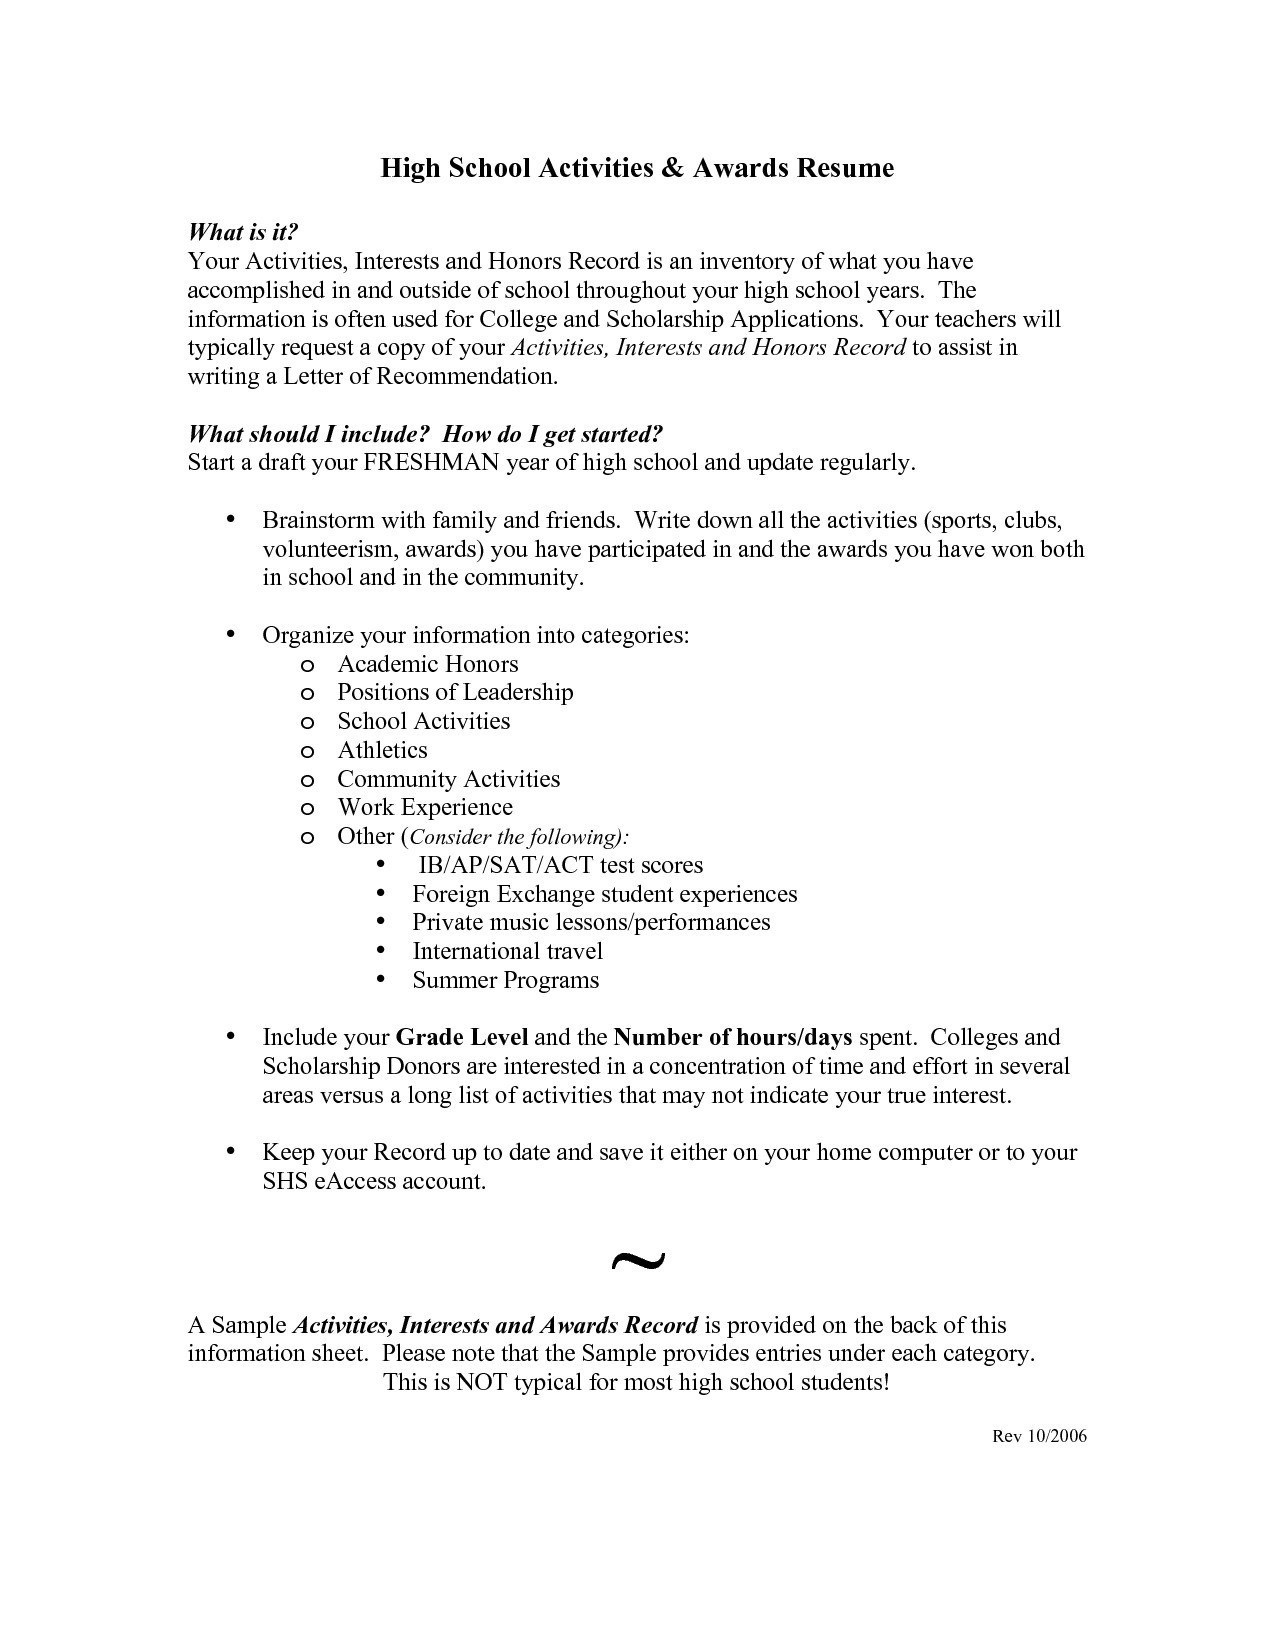 Best High School Resume - Awesome High School Resume Template for College Application